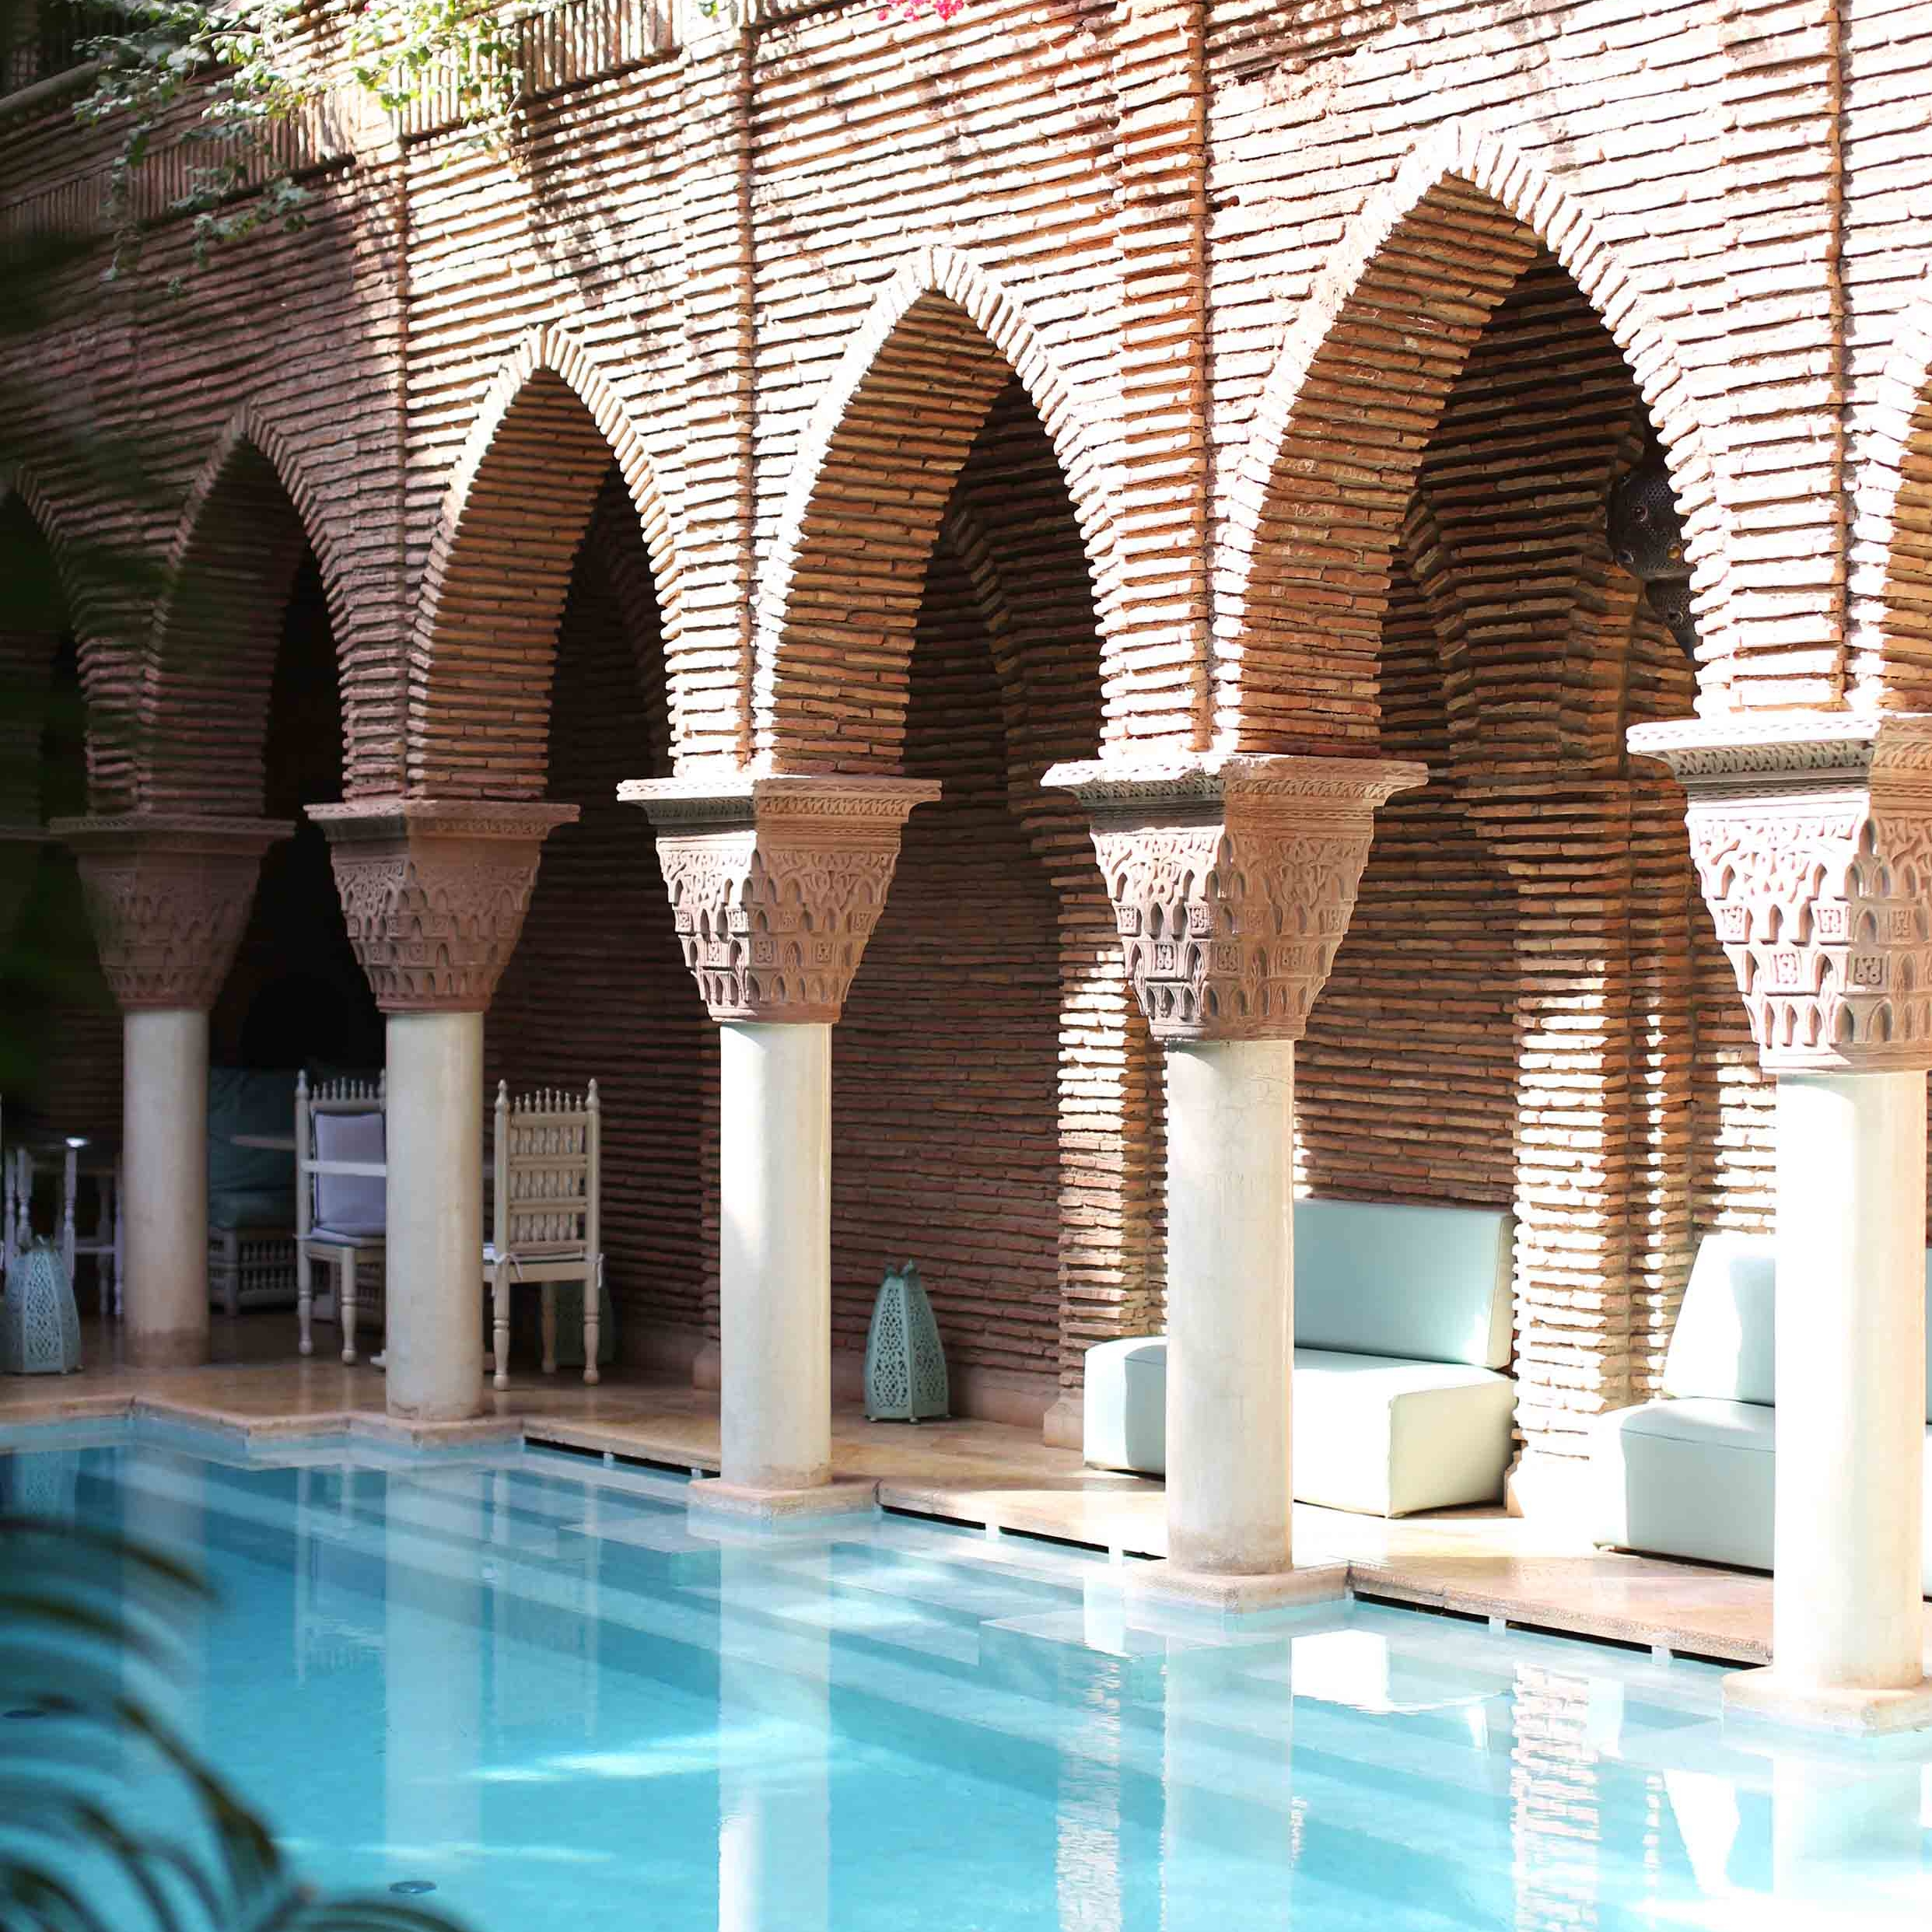 TRAVEL DIARY | LA SULTANA, MARRAKECH